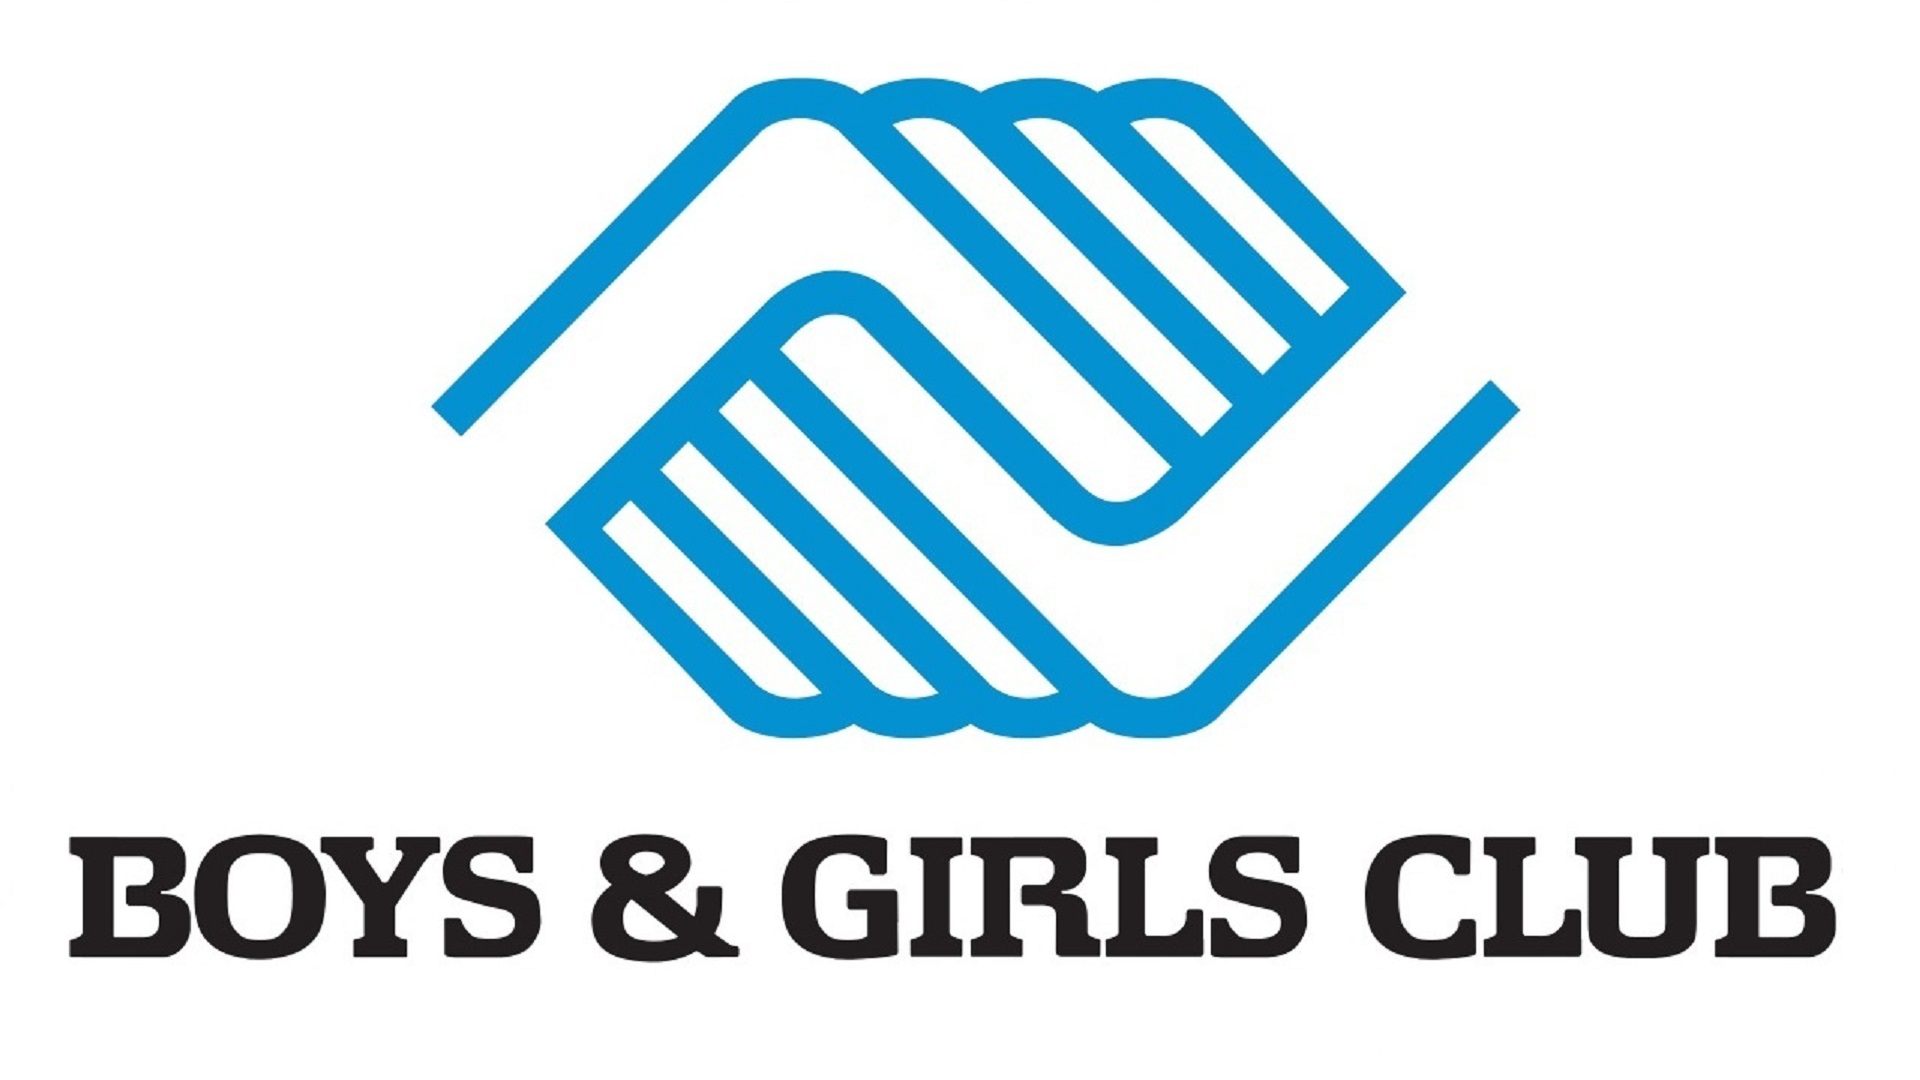 boys and girls club_1540298640248.jpg.jpg